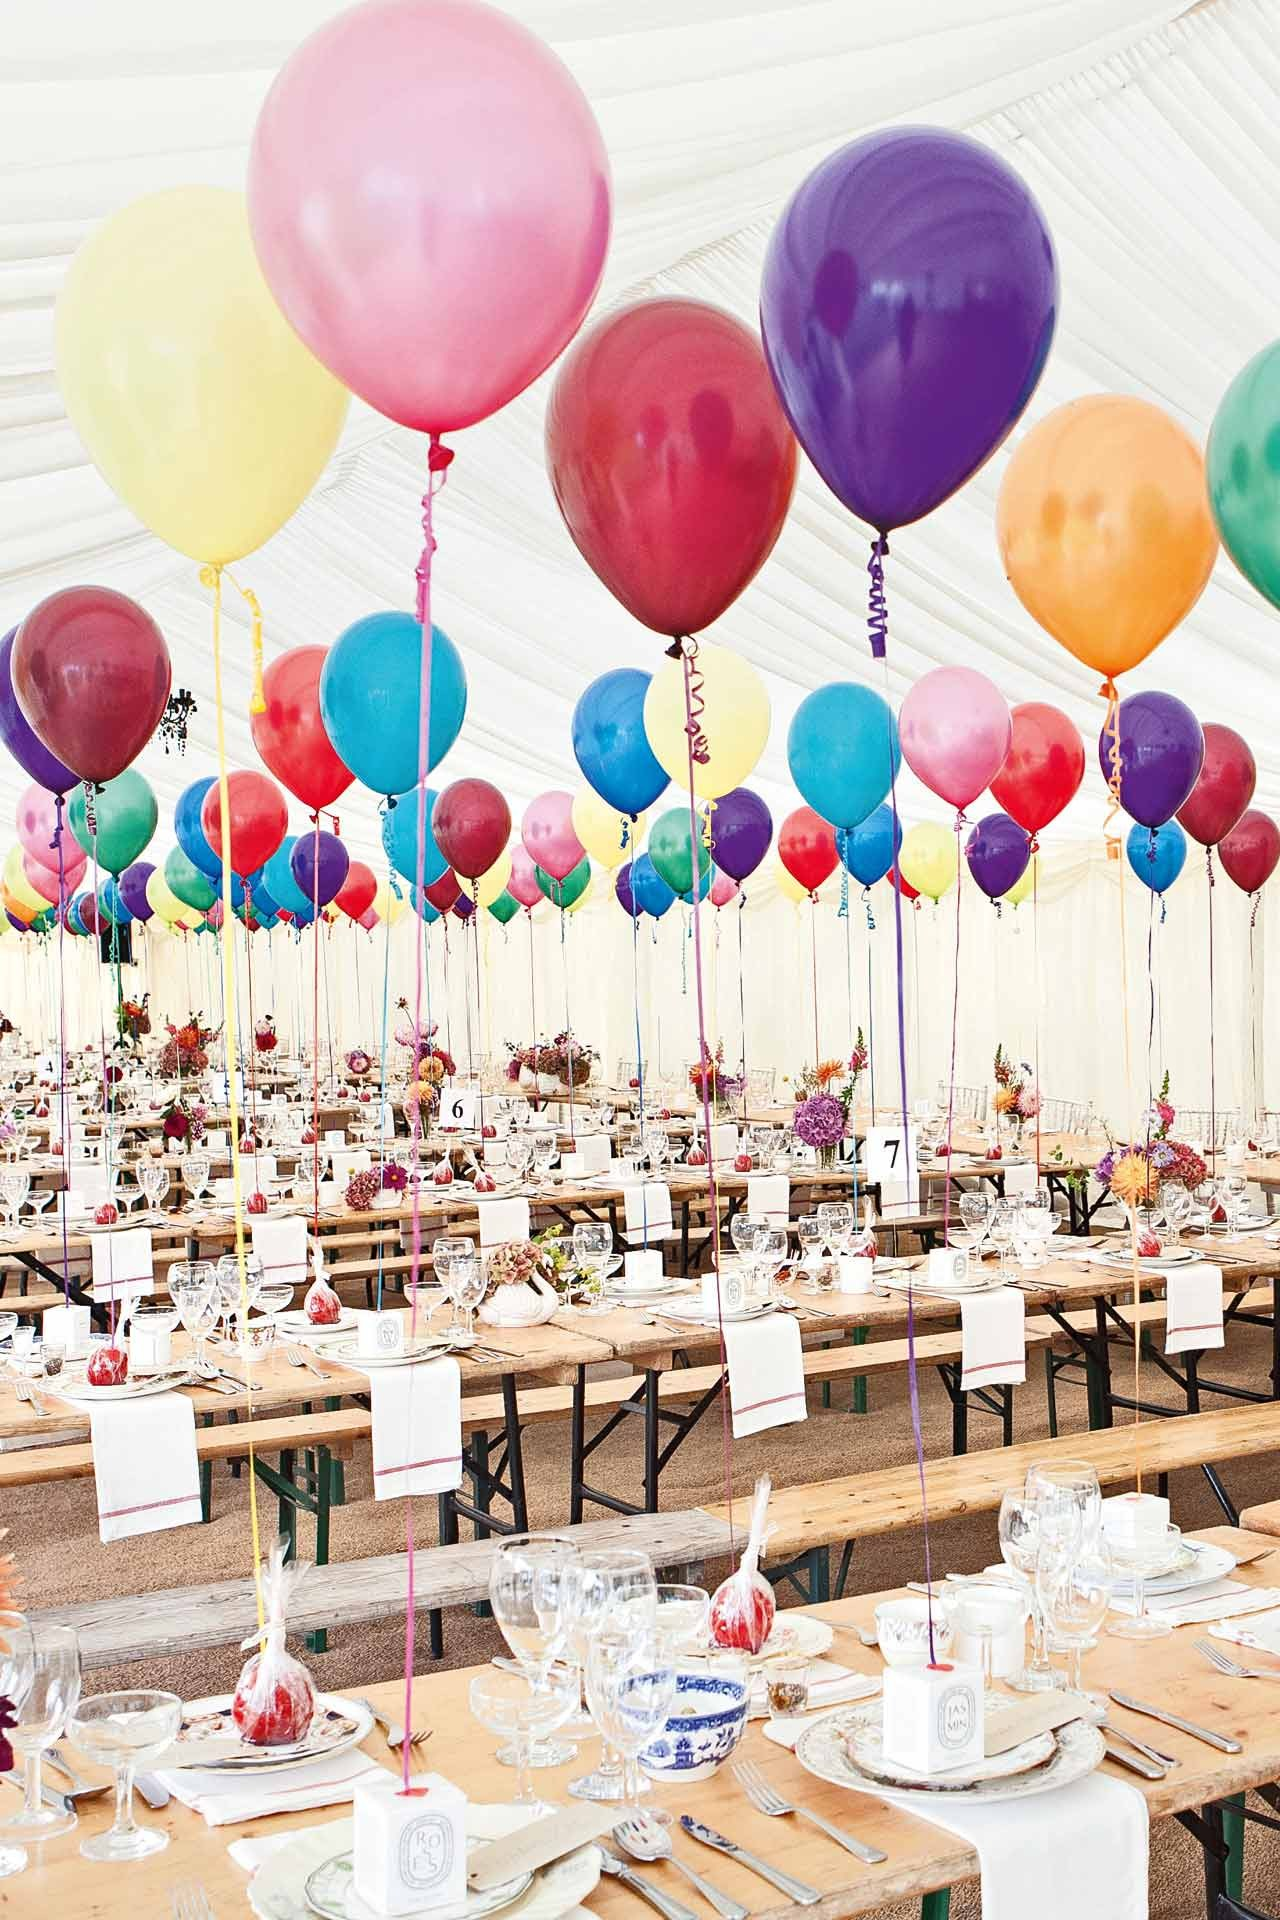 Looking for affordable party decoration ideas for your wedding? We